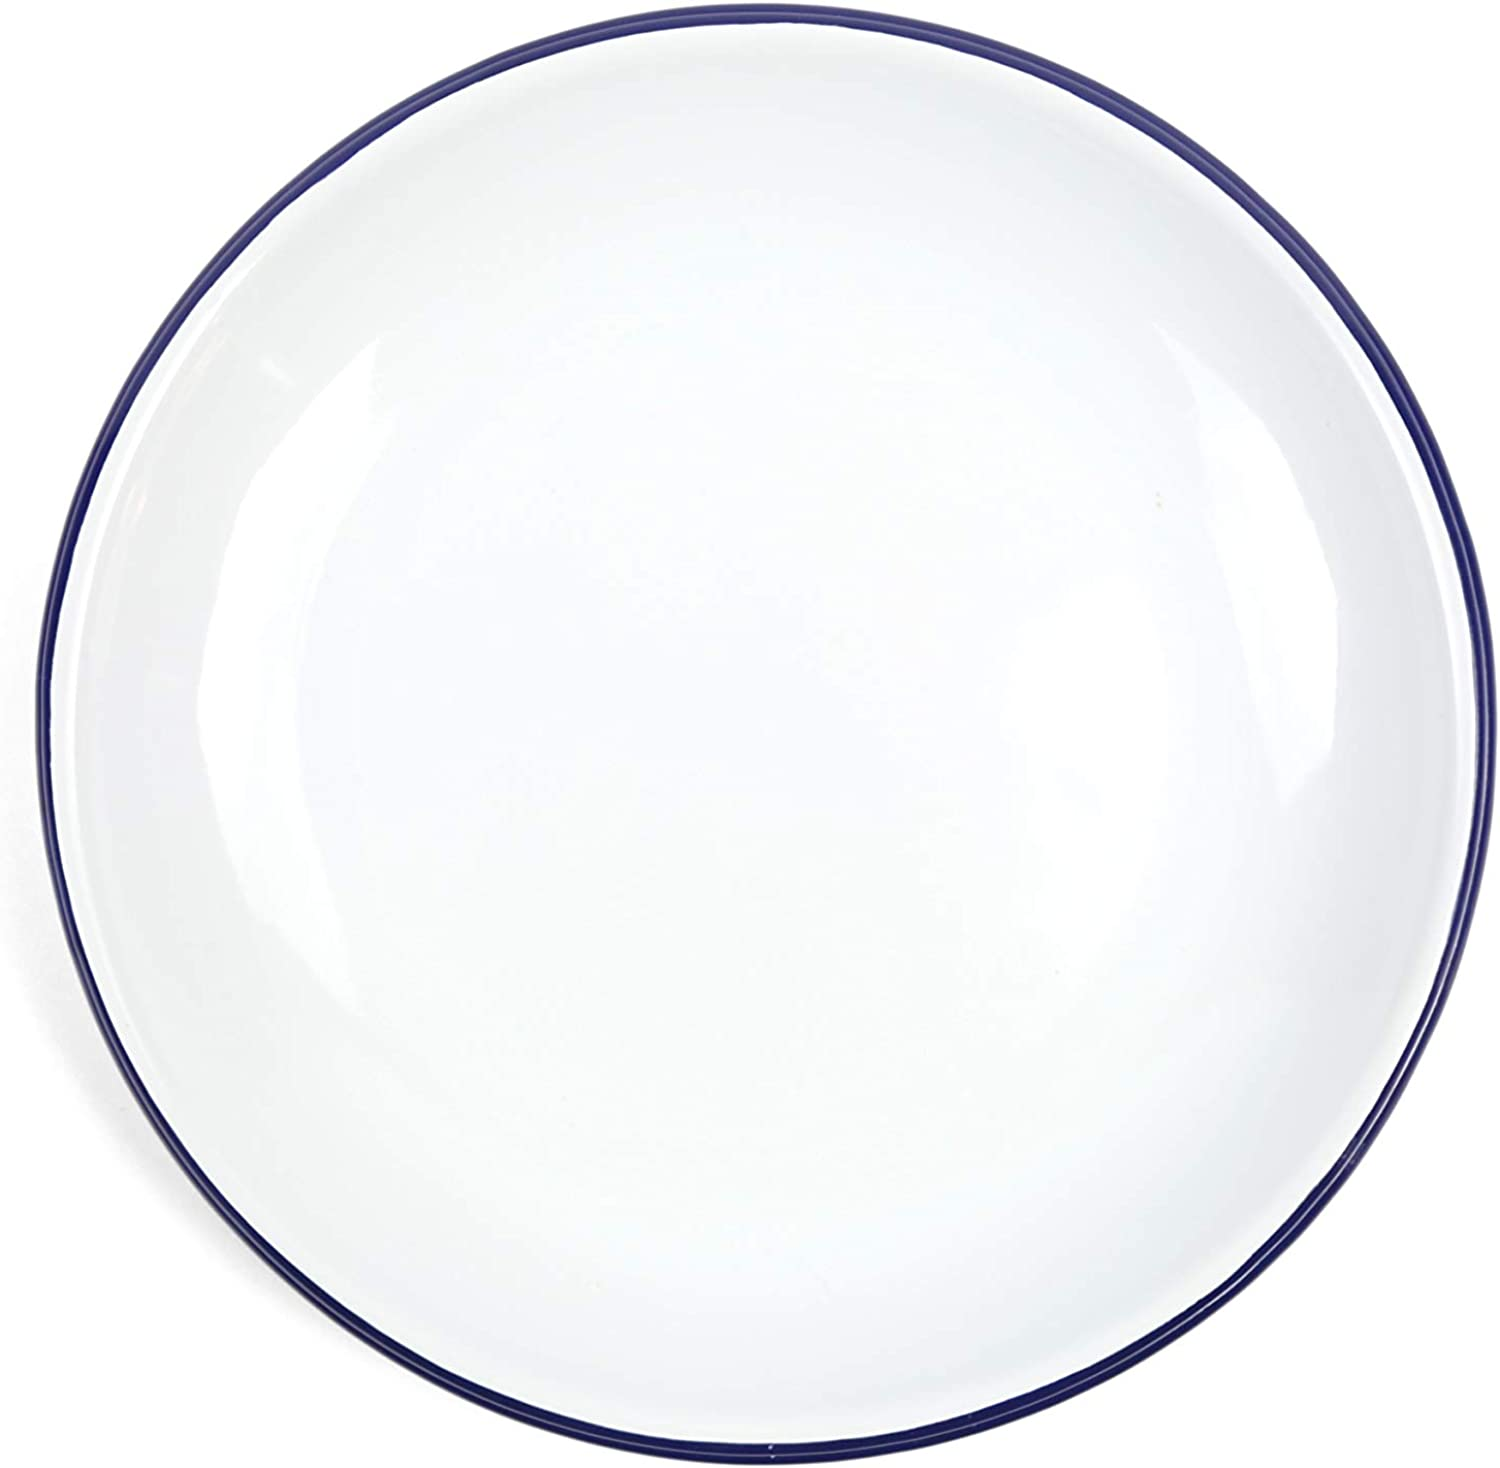 Crow Canyon Home Enamelware Heavy Gauge Dinner Coupe Plate, 10.5 , Vintage White with bluee Rim (Set of 4)